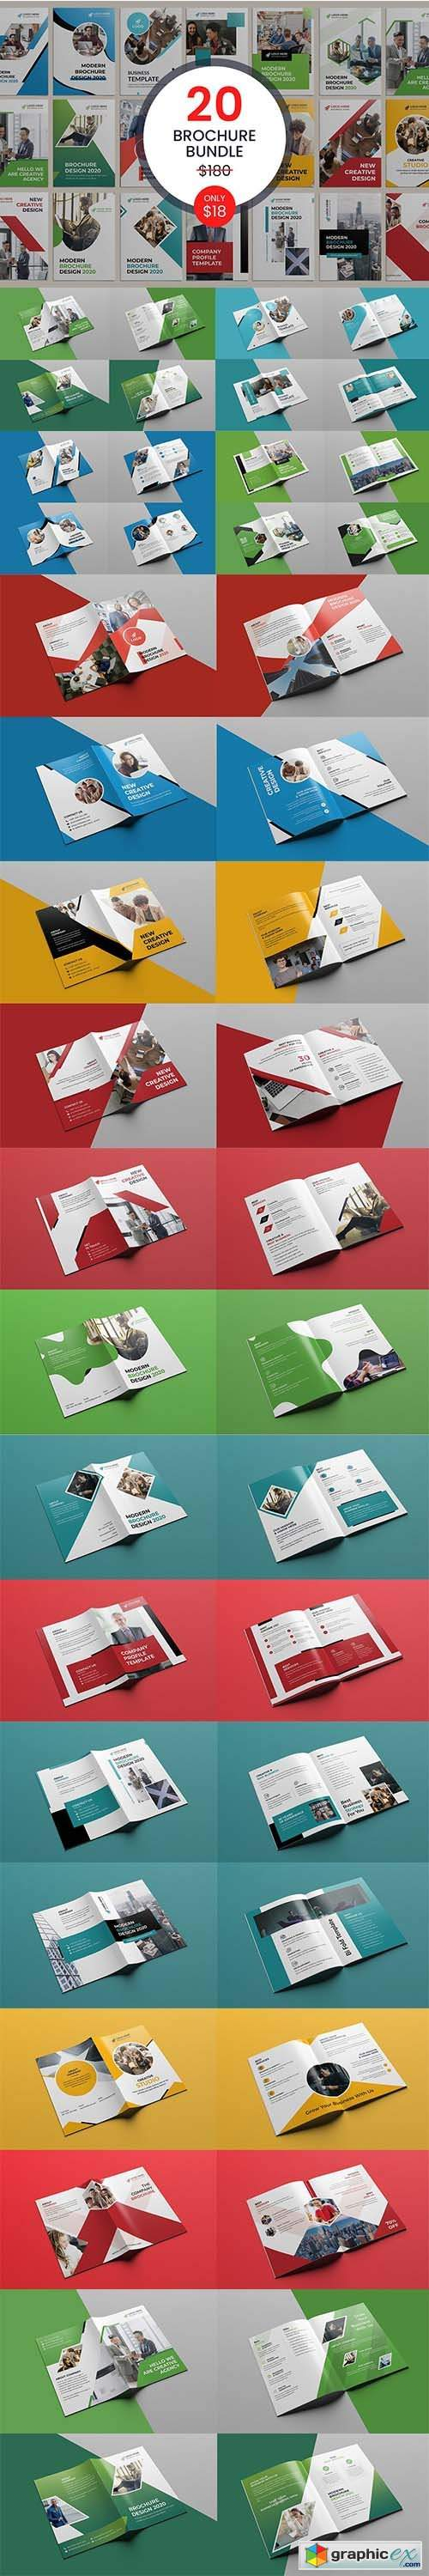 20 Bi-fold Brochure Template Bundle